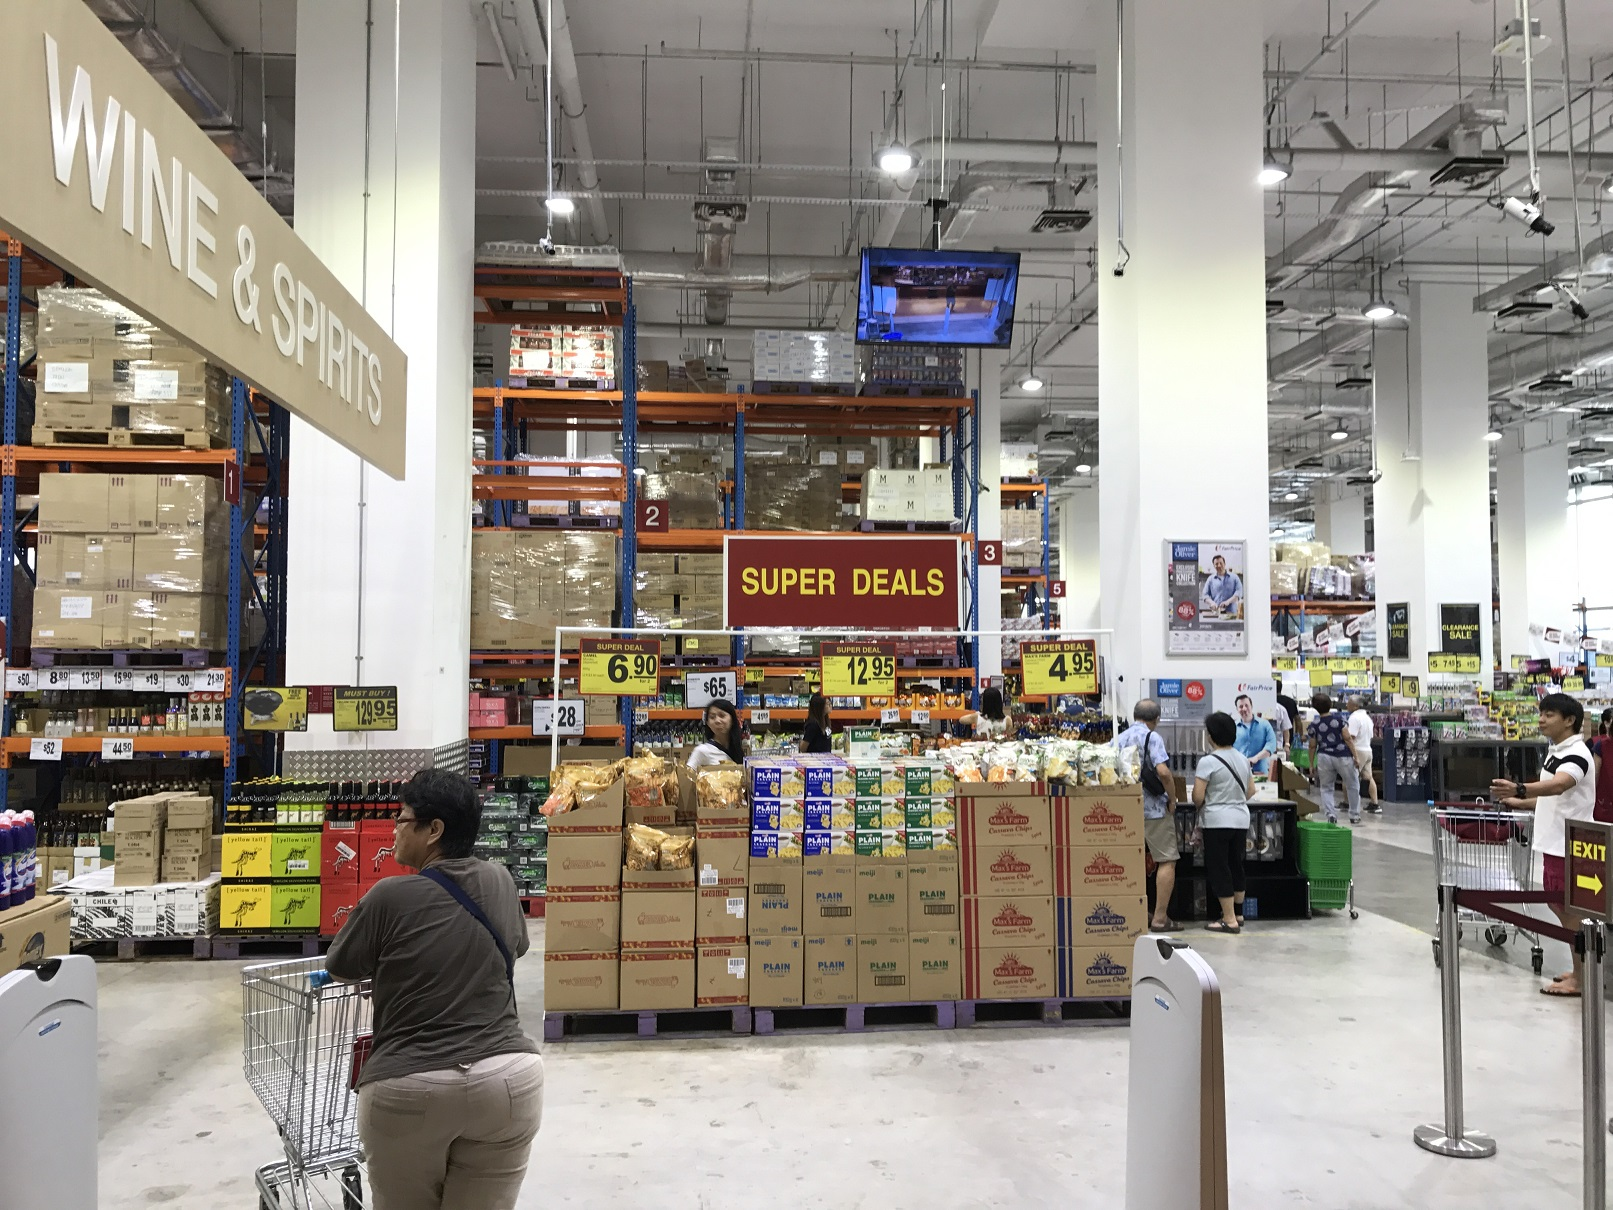 Checking out the NTUC warehouse club!